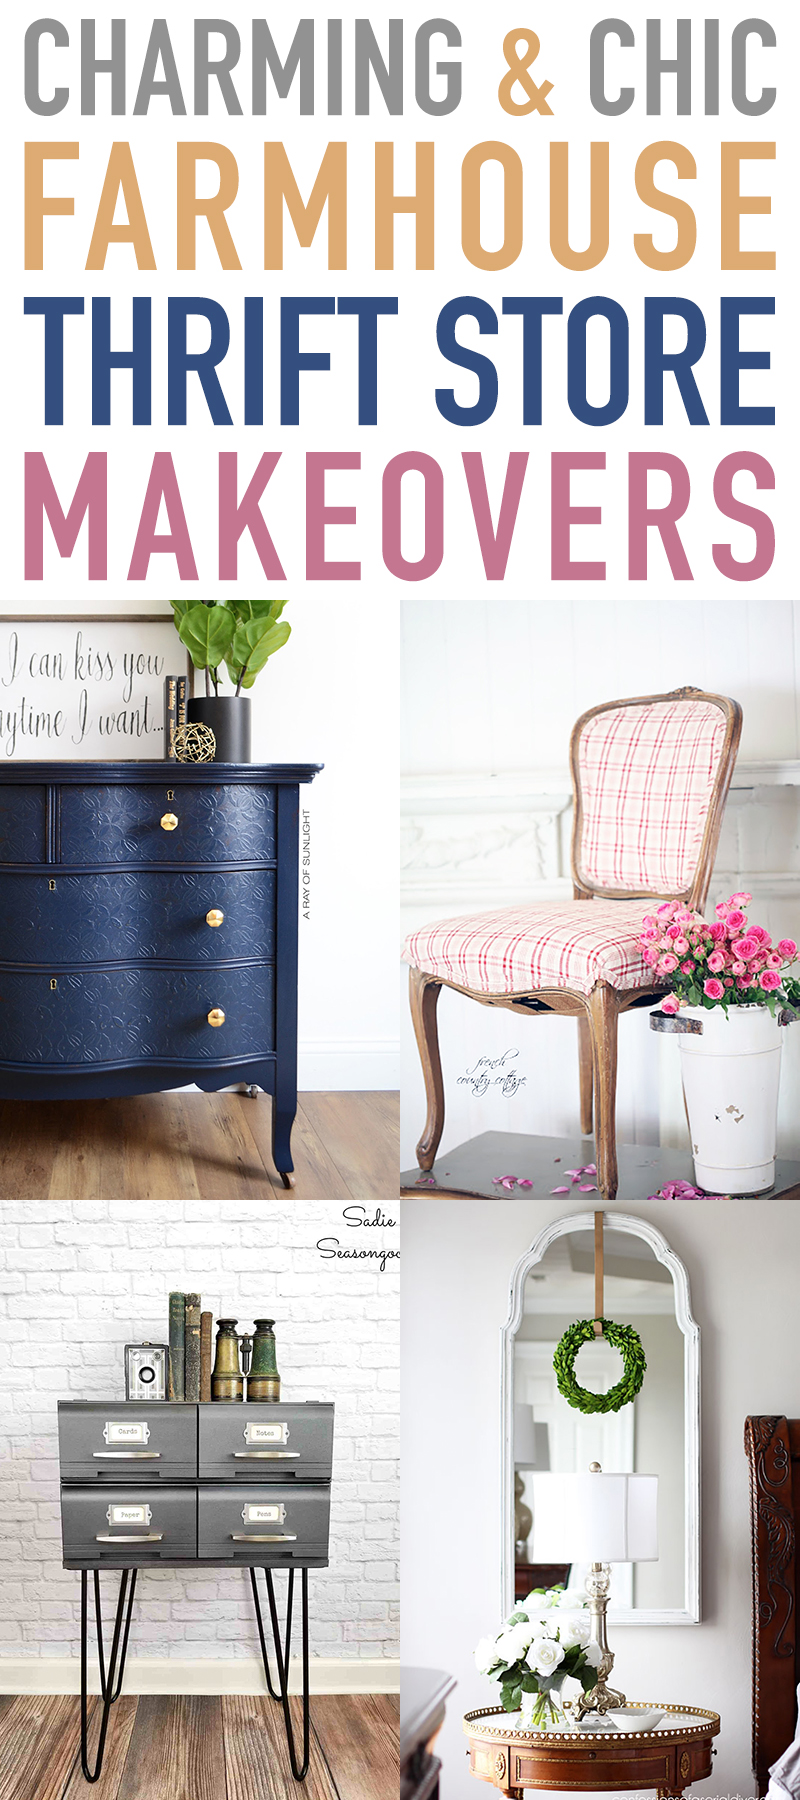 Charms and Chic Farmhouse Thrift Store Makeovers are going to Inspired you to create your own original diy project that will be amazing!